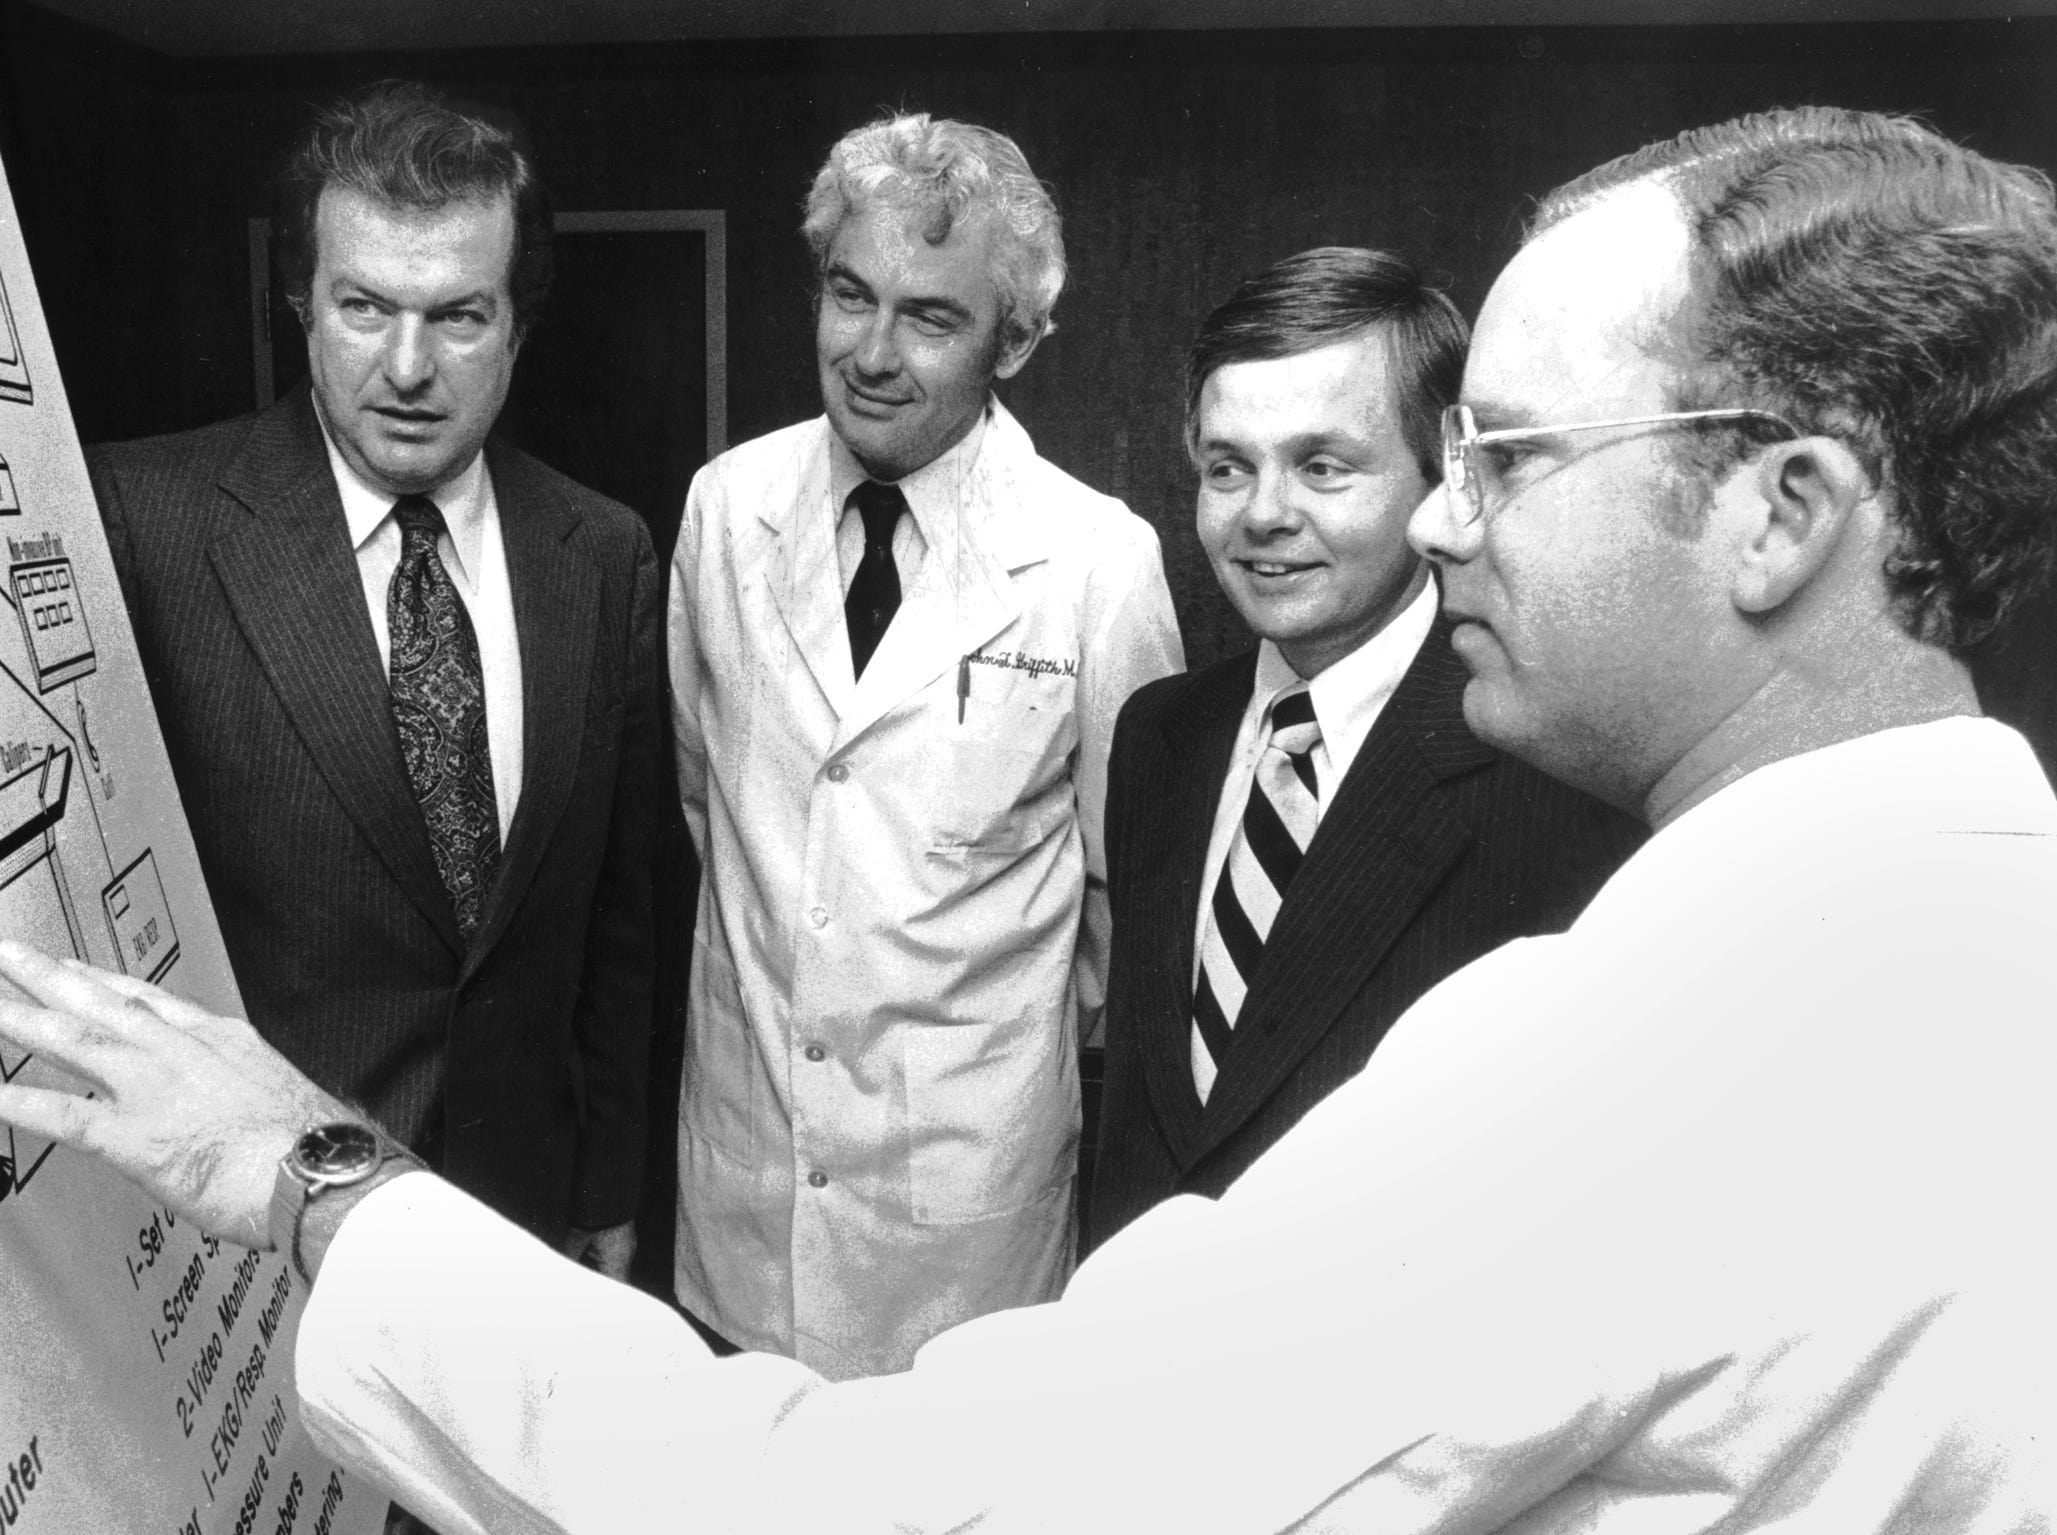 Dr. William G. Andrade (right), director of the Emergency Services Dept. at Le Bonheur Children's Hospital, discusses new emergency room ideas to be implemented at the hospital with (from left) Francis X. Maguire, senior vice president of corporate communications at Federal Express, Dr. John Griffith, Medical Director at Le Bonheur and Pediatric Dept. Chairman at UTCHS (University of Tennessee Center for the Health Sciences) and Eugene Cashman Jr., president of Le Bonheur. Federal Express donated $25,000 to the hospital to help with the project on Nov. 16, 1979.